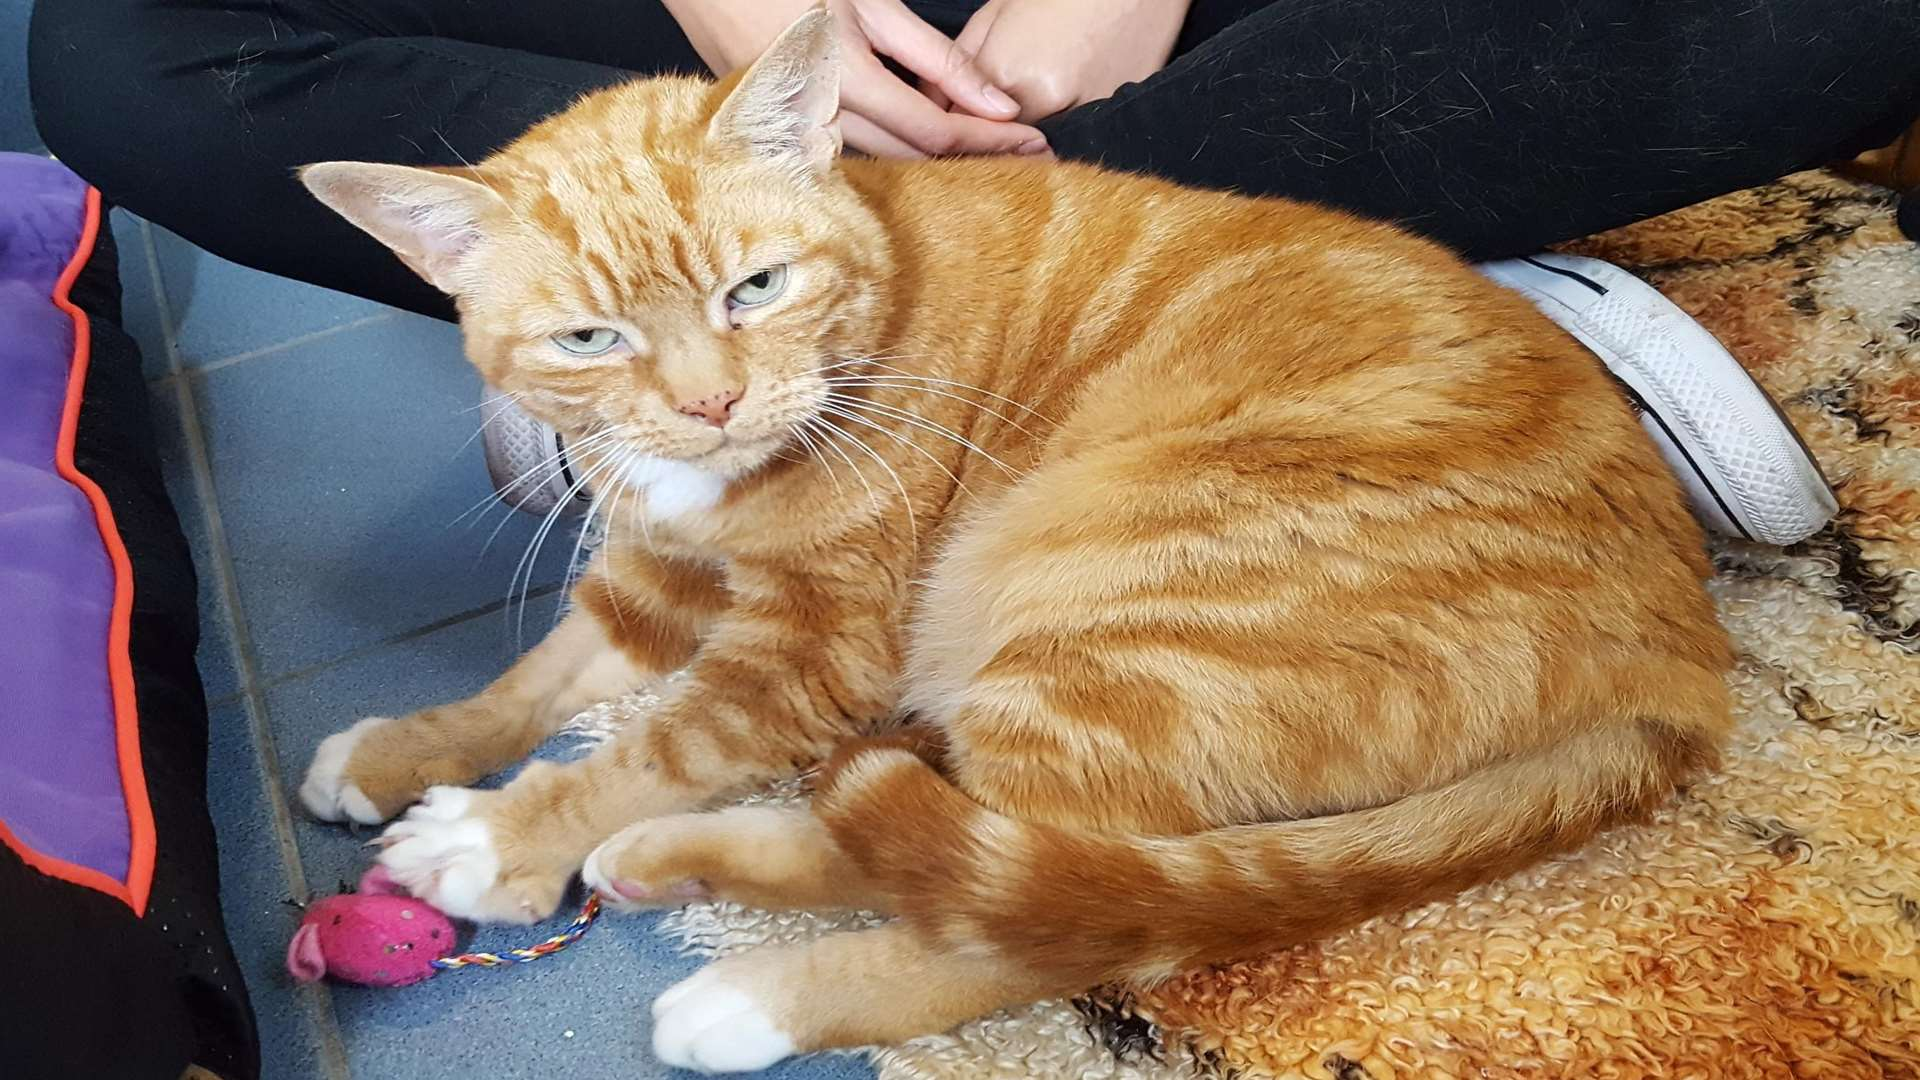 Eight-year-old Tommy is very affectionate and loves attention